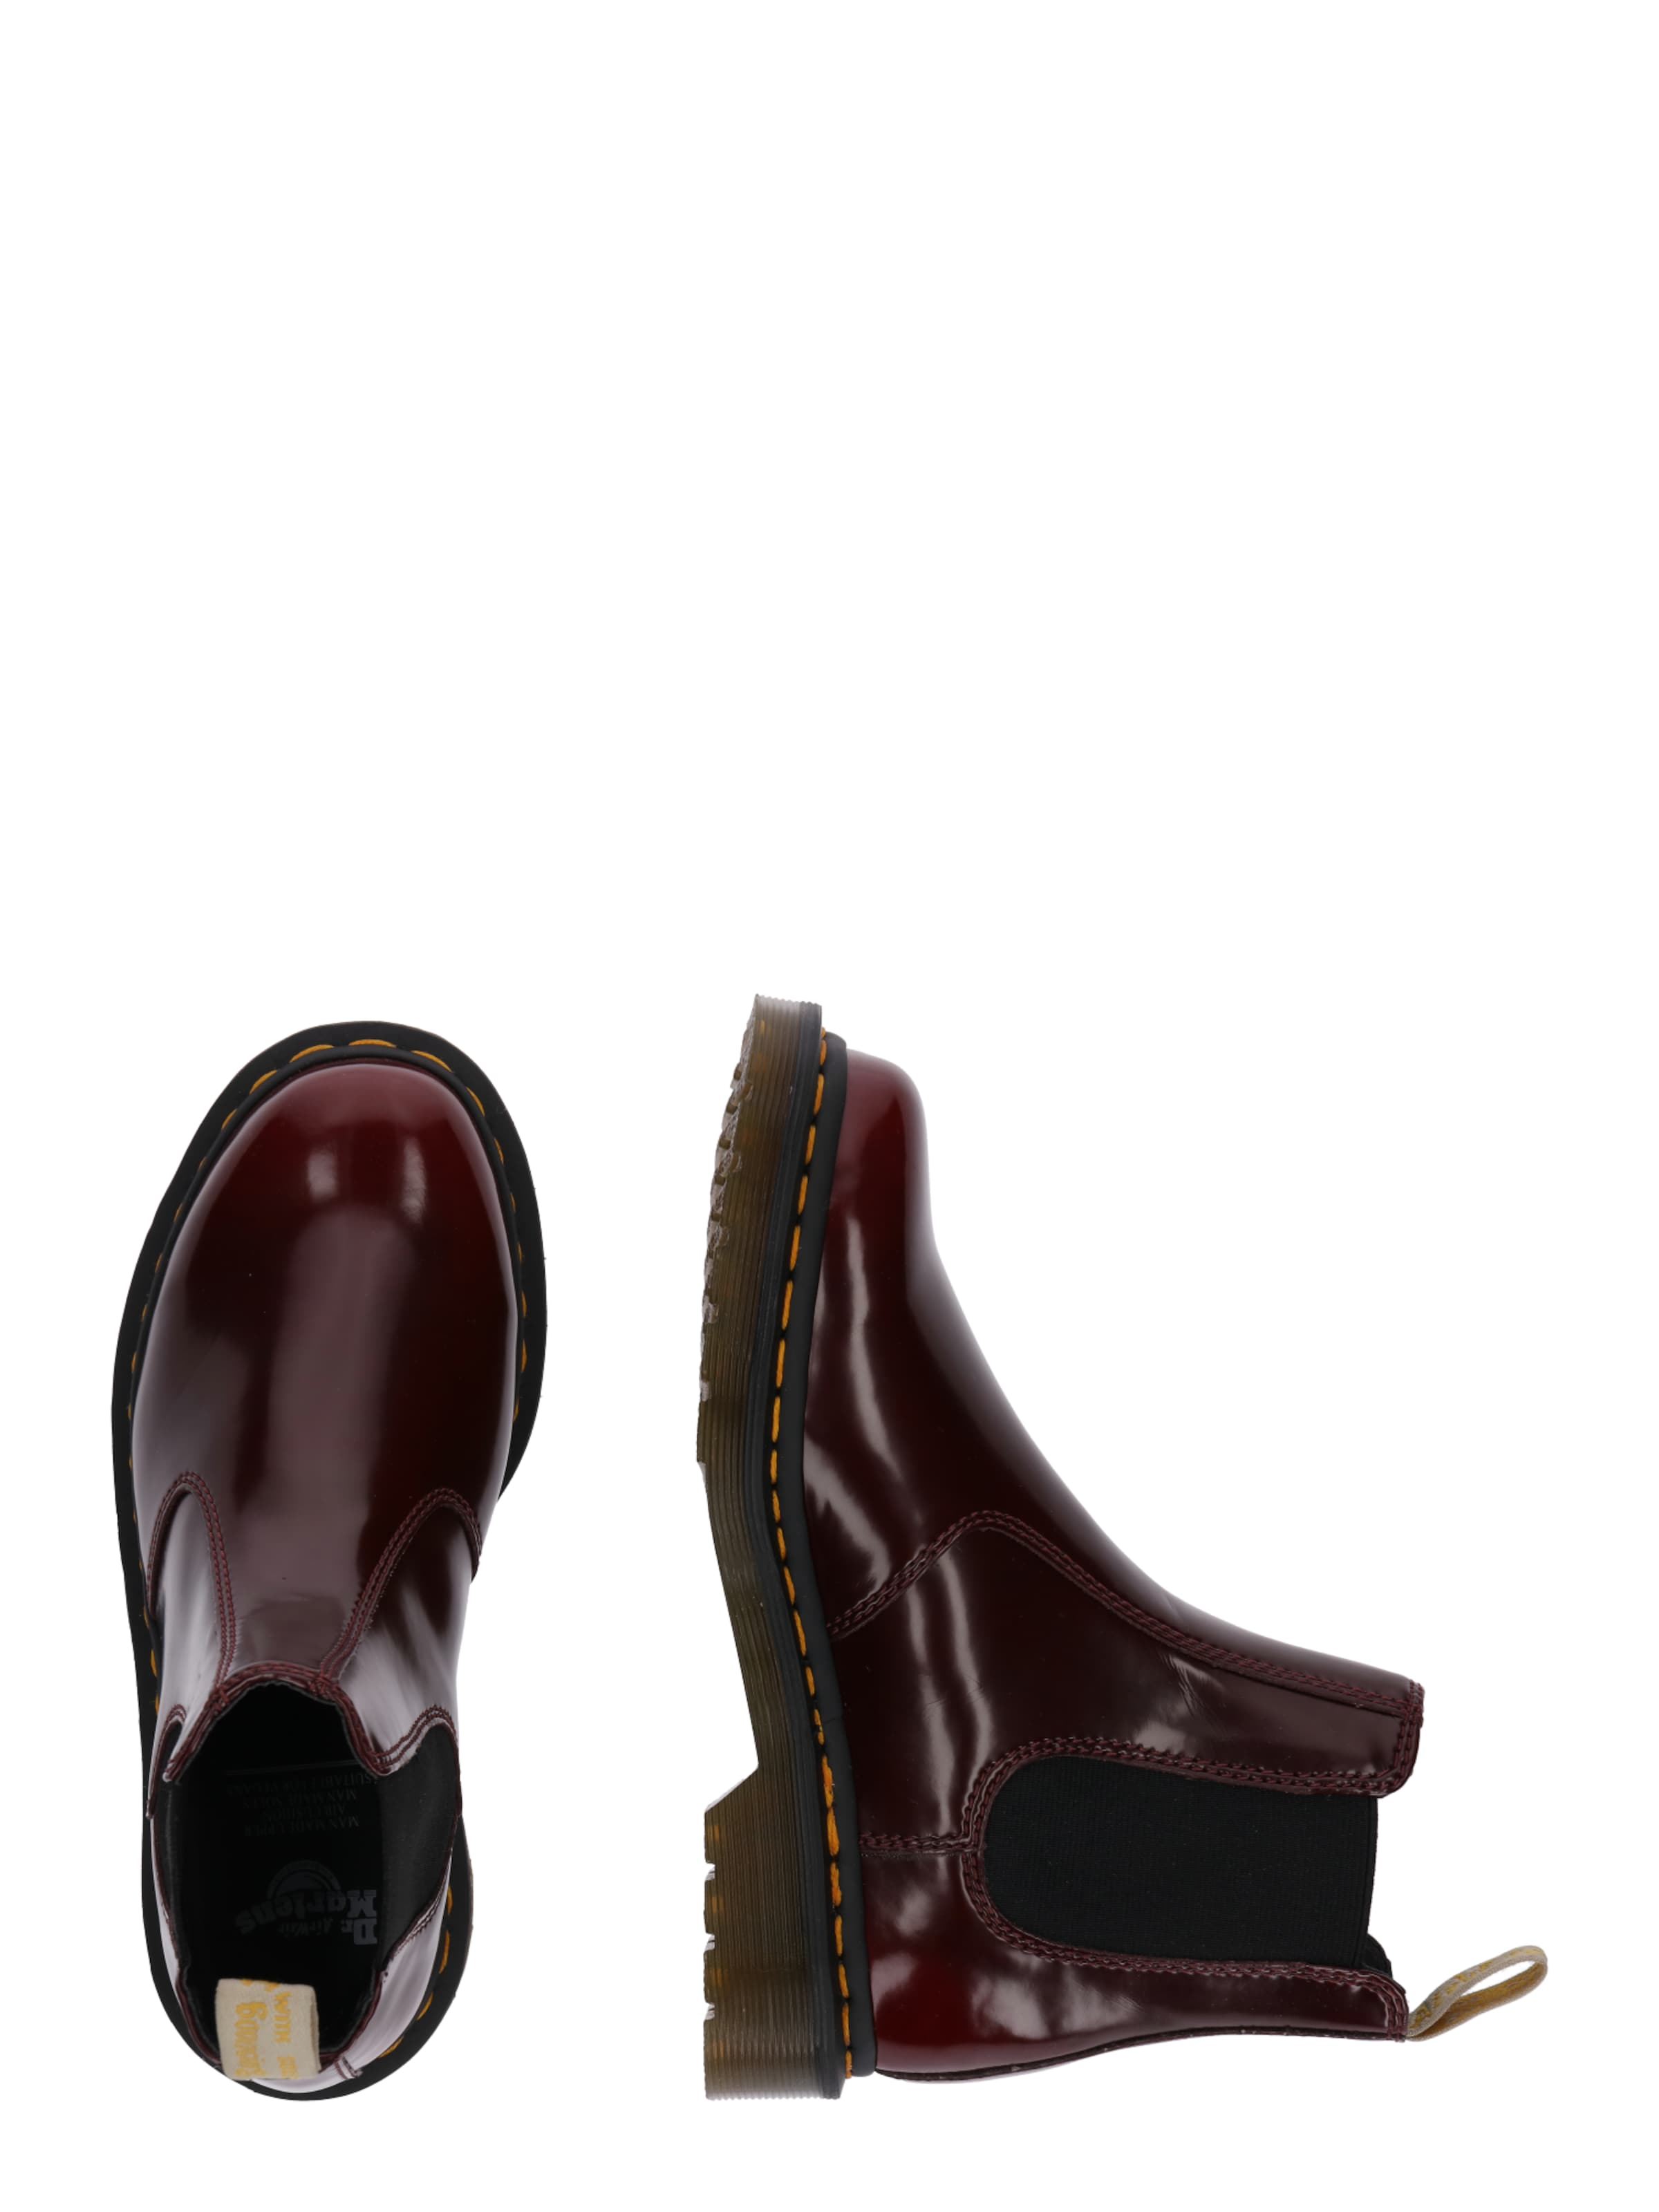 Bordeaux In Boot Chelsea In DrMartens Boot DrMartens In Bordeaux Chelsea Boot Chelsea DrMartens 0wm8nvyON